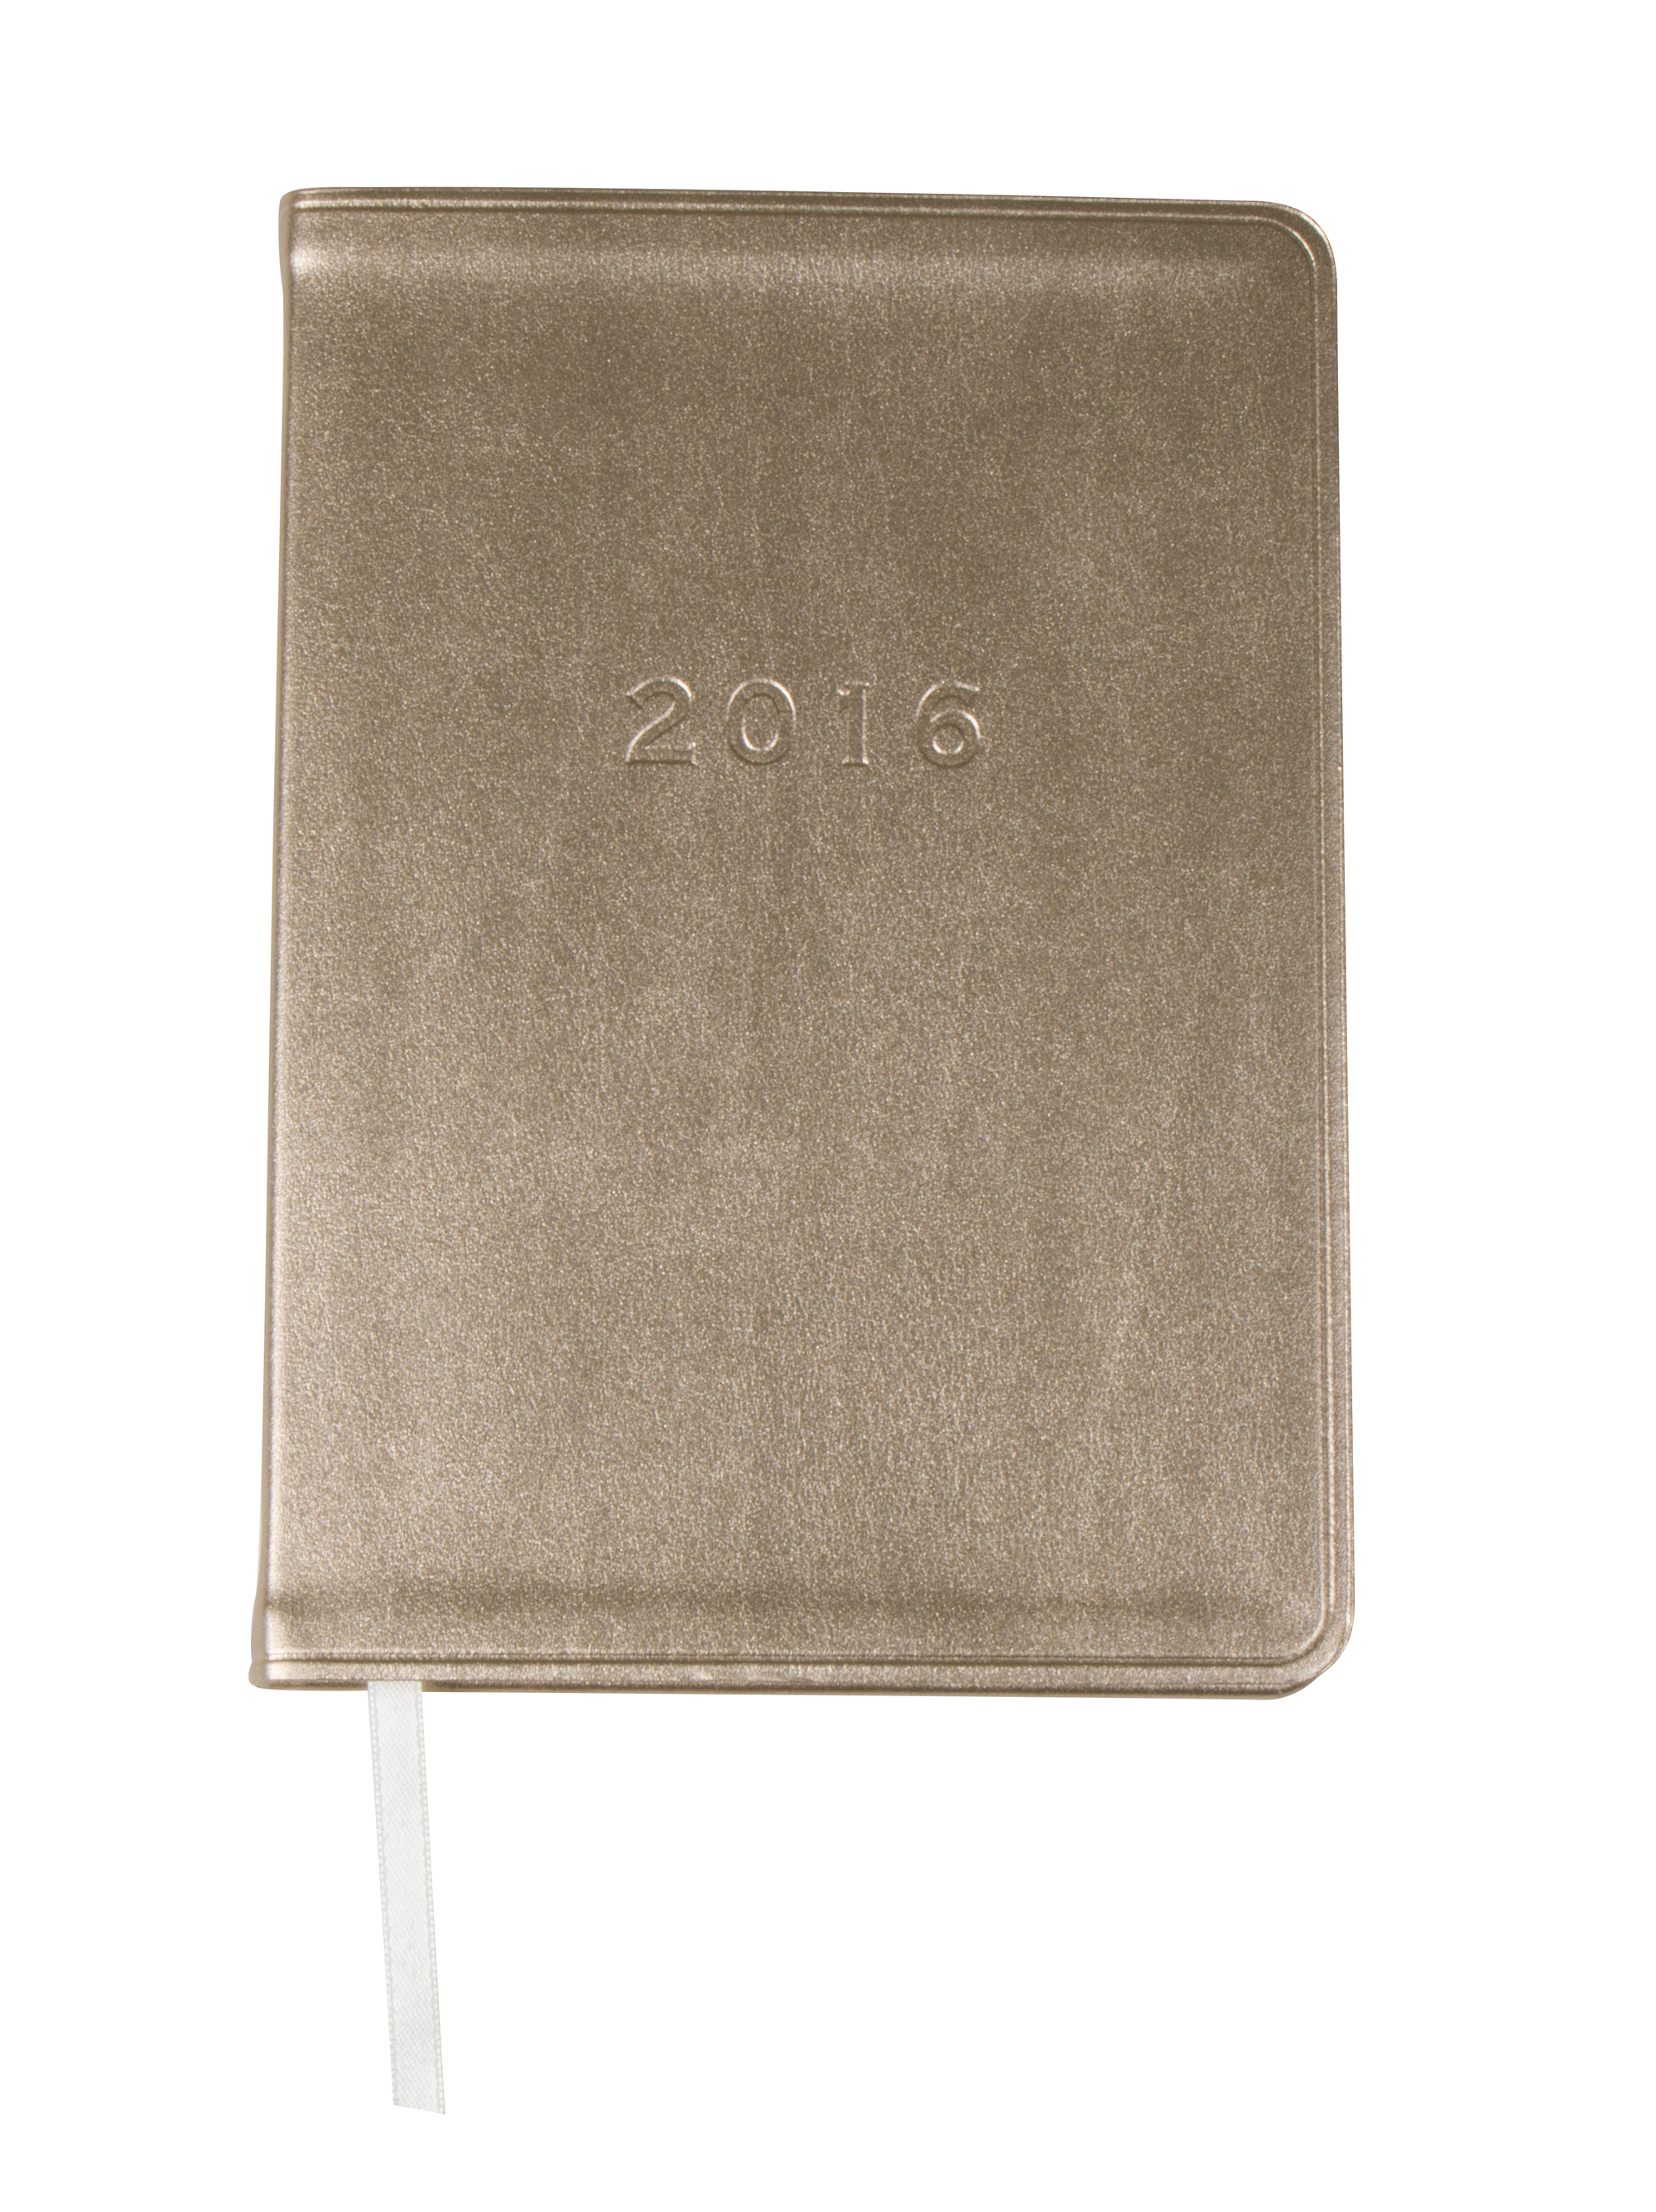 "Gallery Leather ""Metallic Weekly Planner"" in ""Metallic Gold,"" $15 at Barnes & Noble Towne Centre"